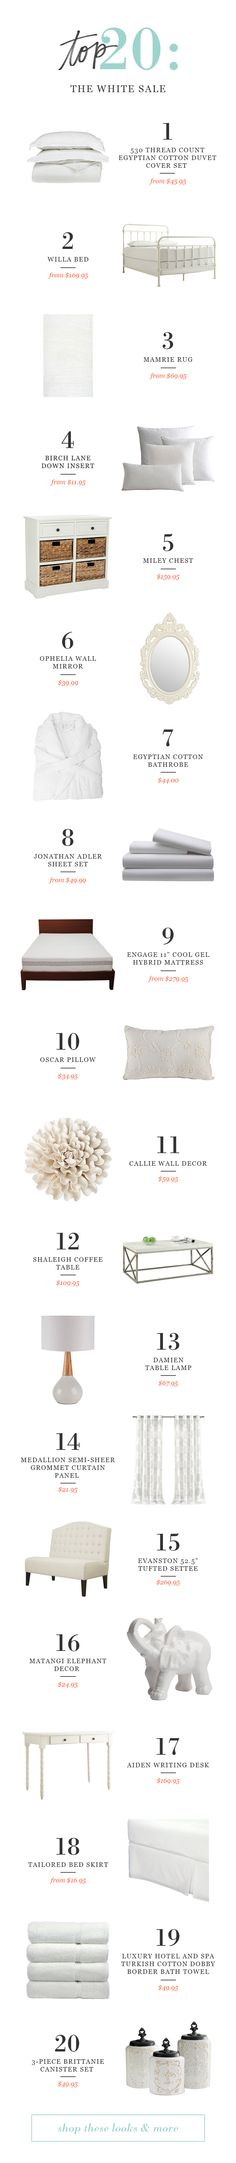 Our top 10 picks from our Winter White sale! Don't miss deals on everything you need to refresh your home for the new year.